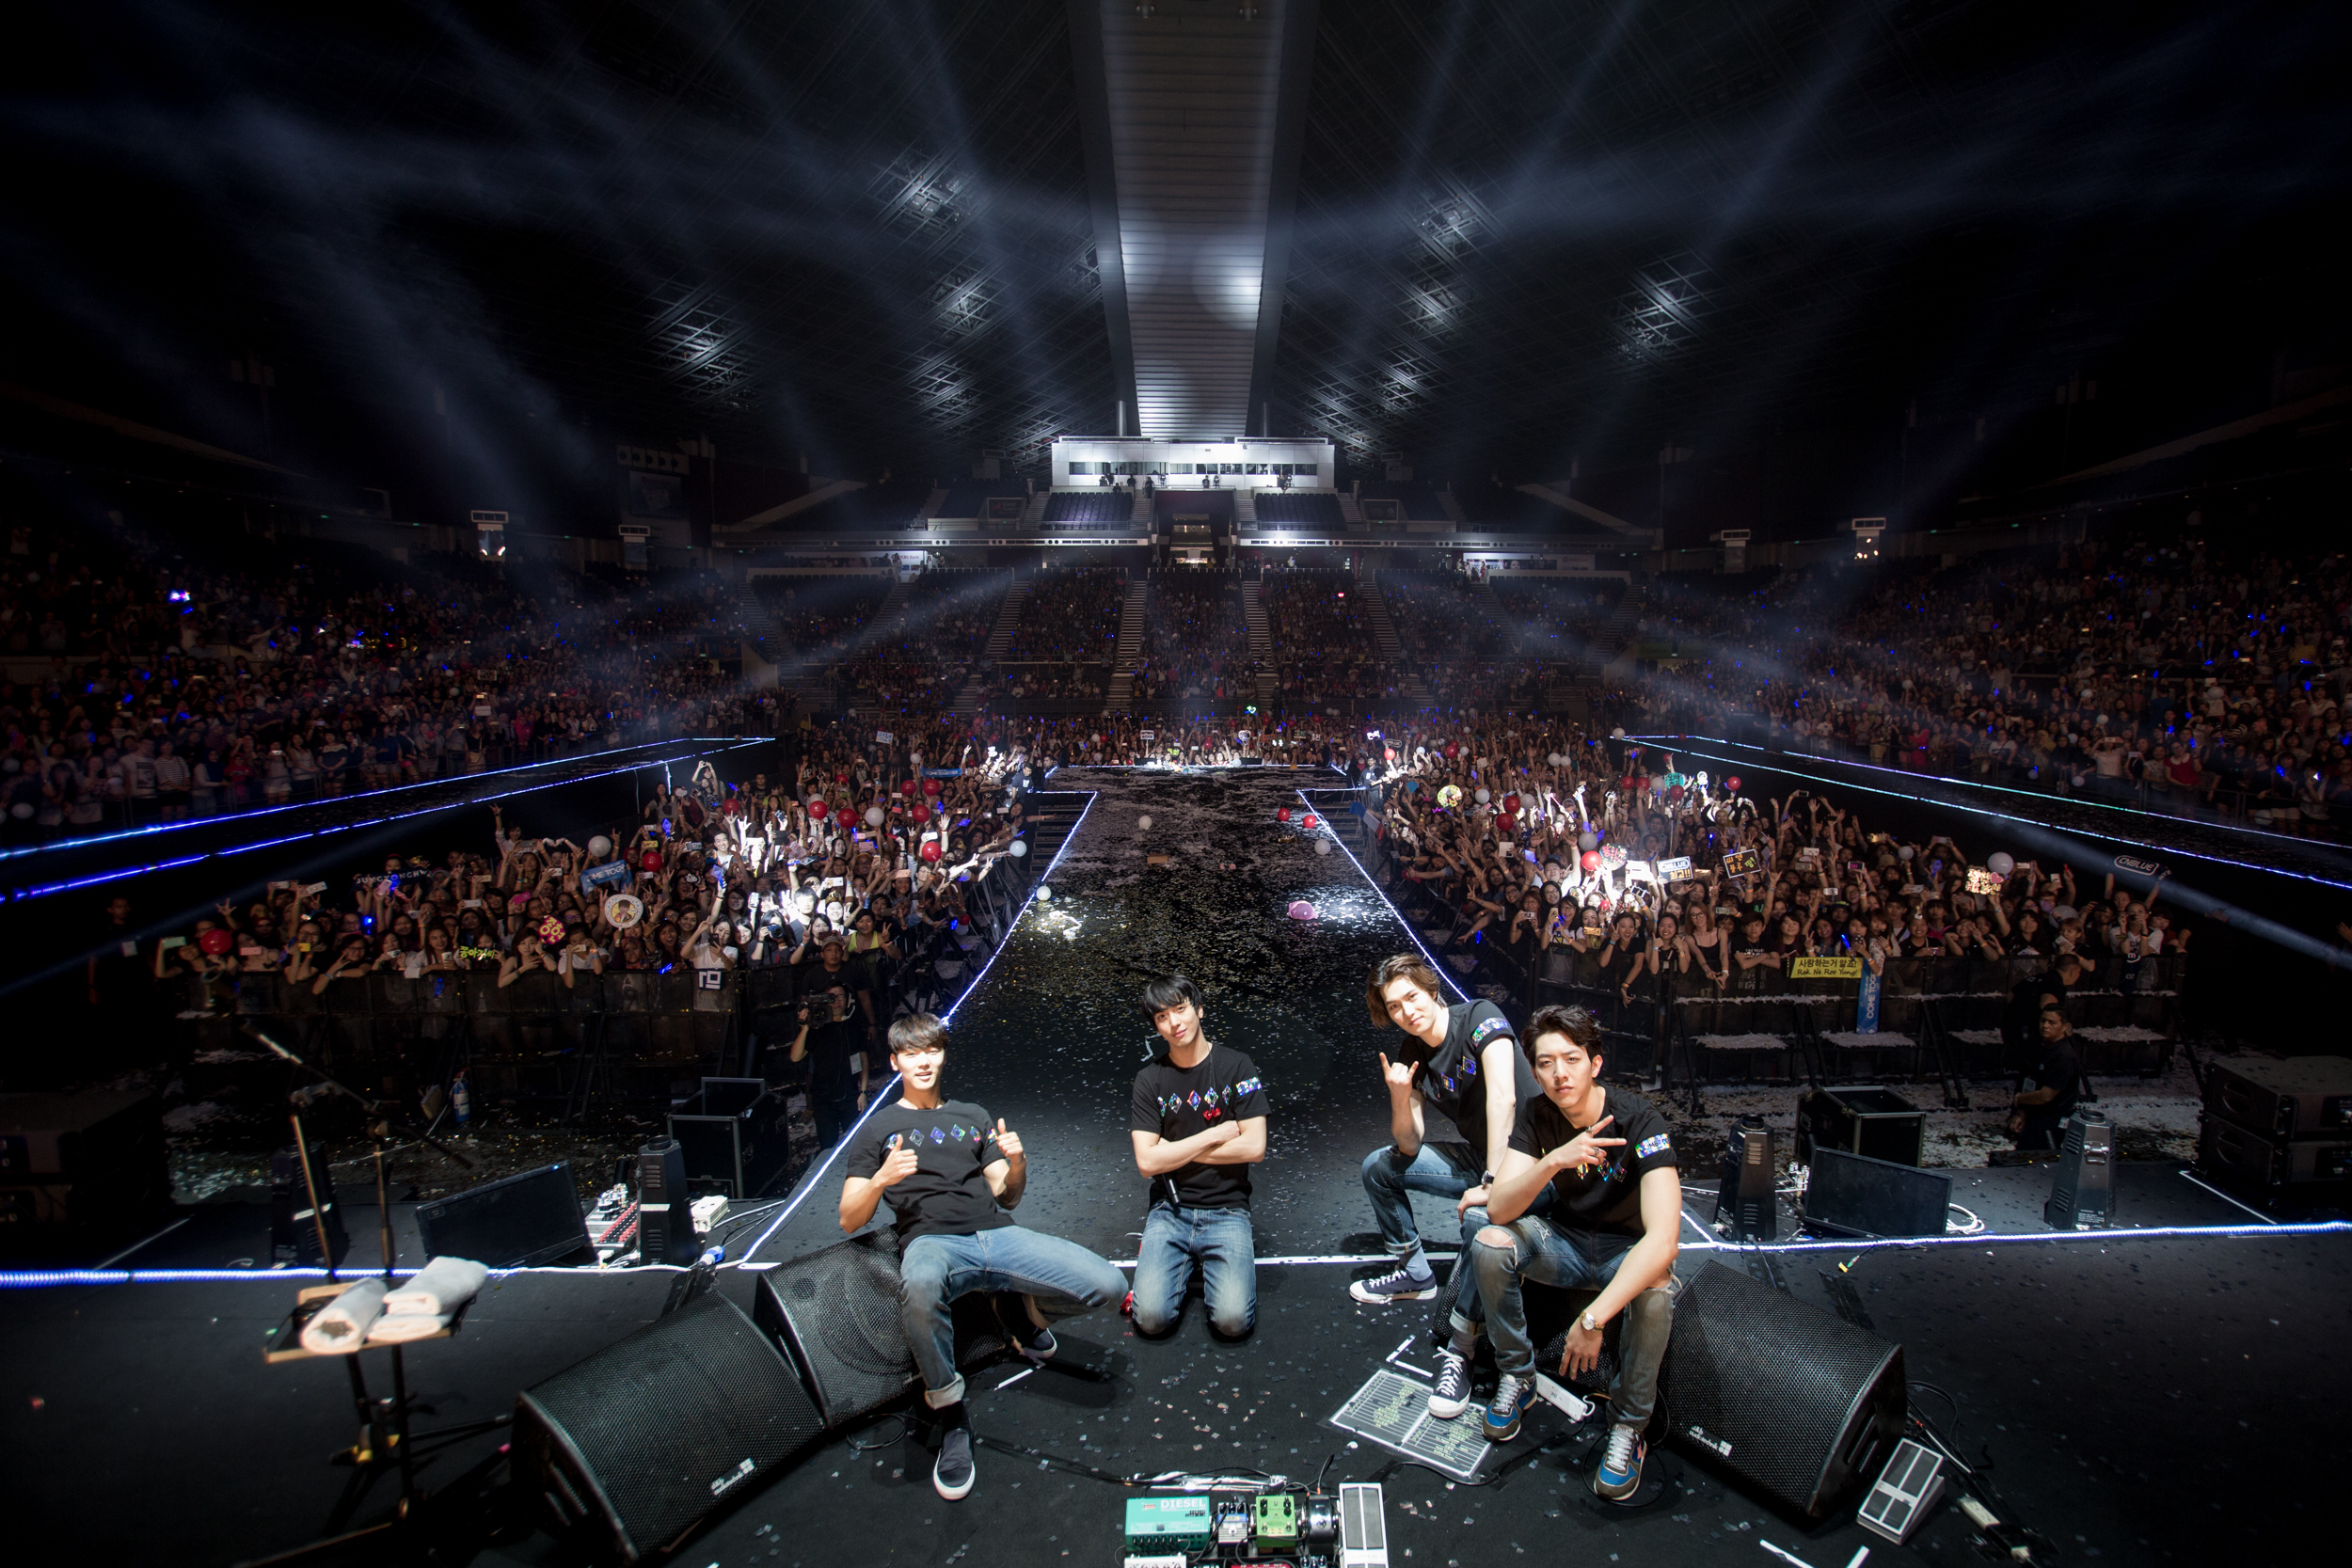 CNBLUE dominate the stage at their Singapore concert